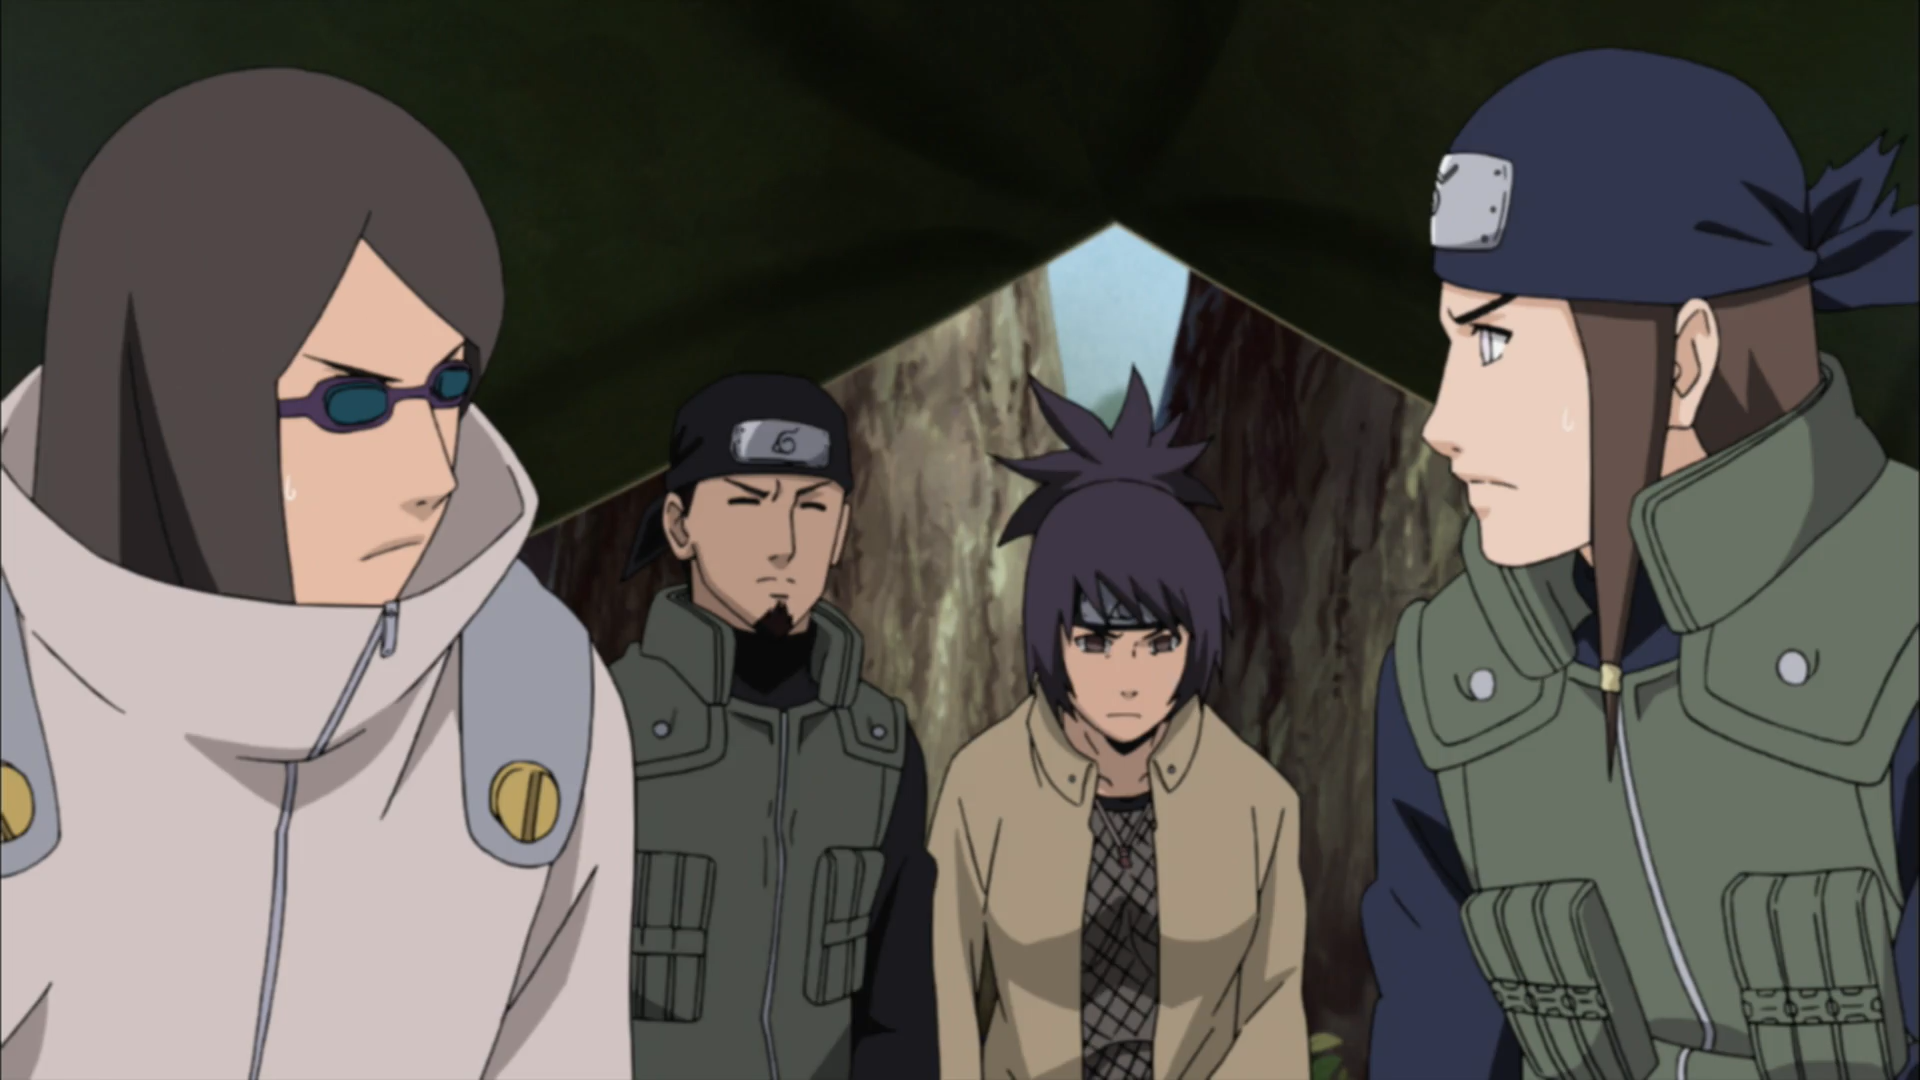 infiltration and reconnaissance party narutopedia